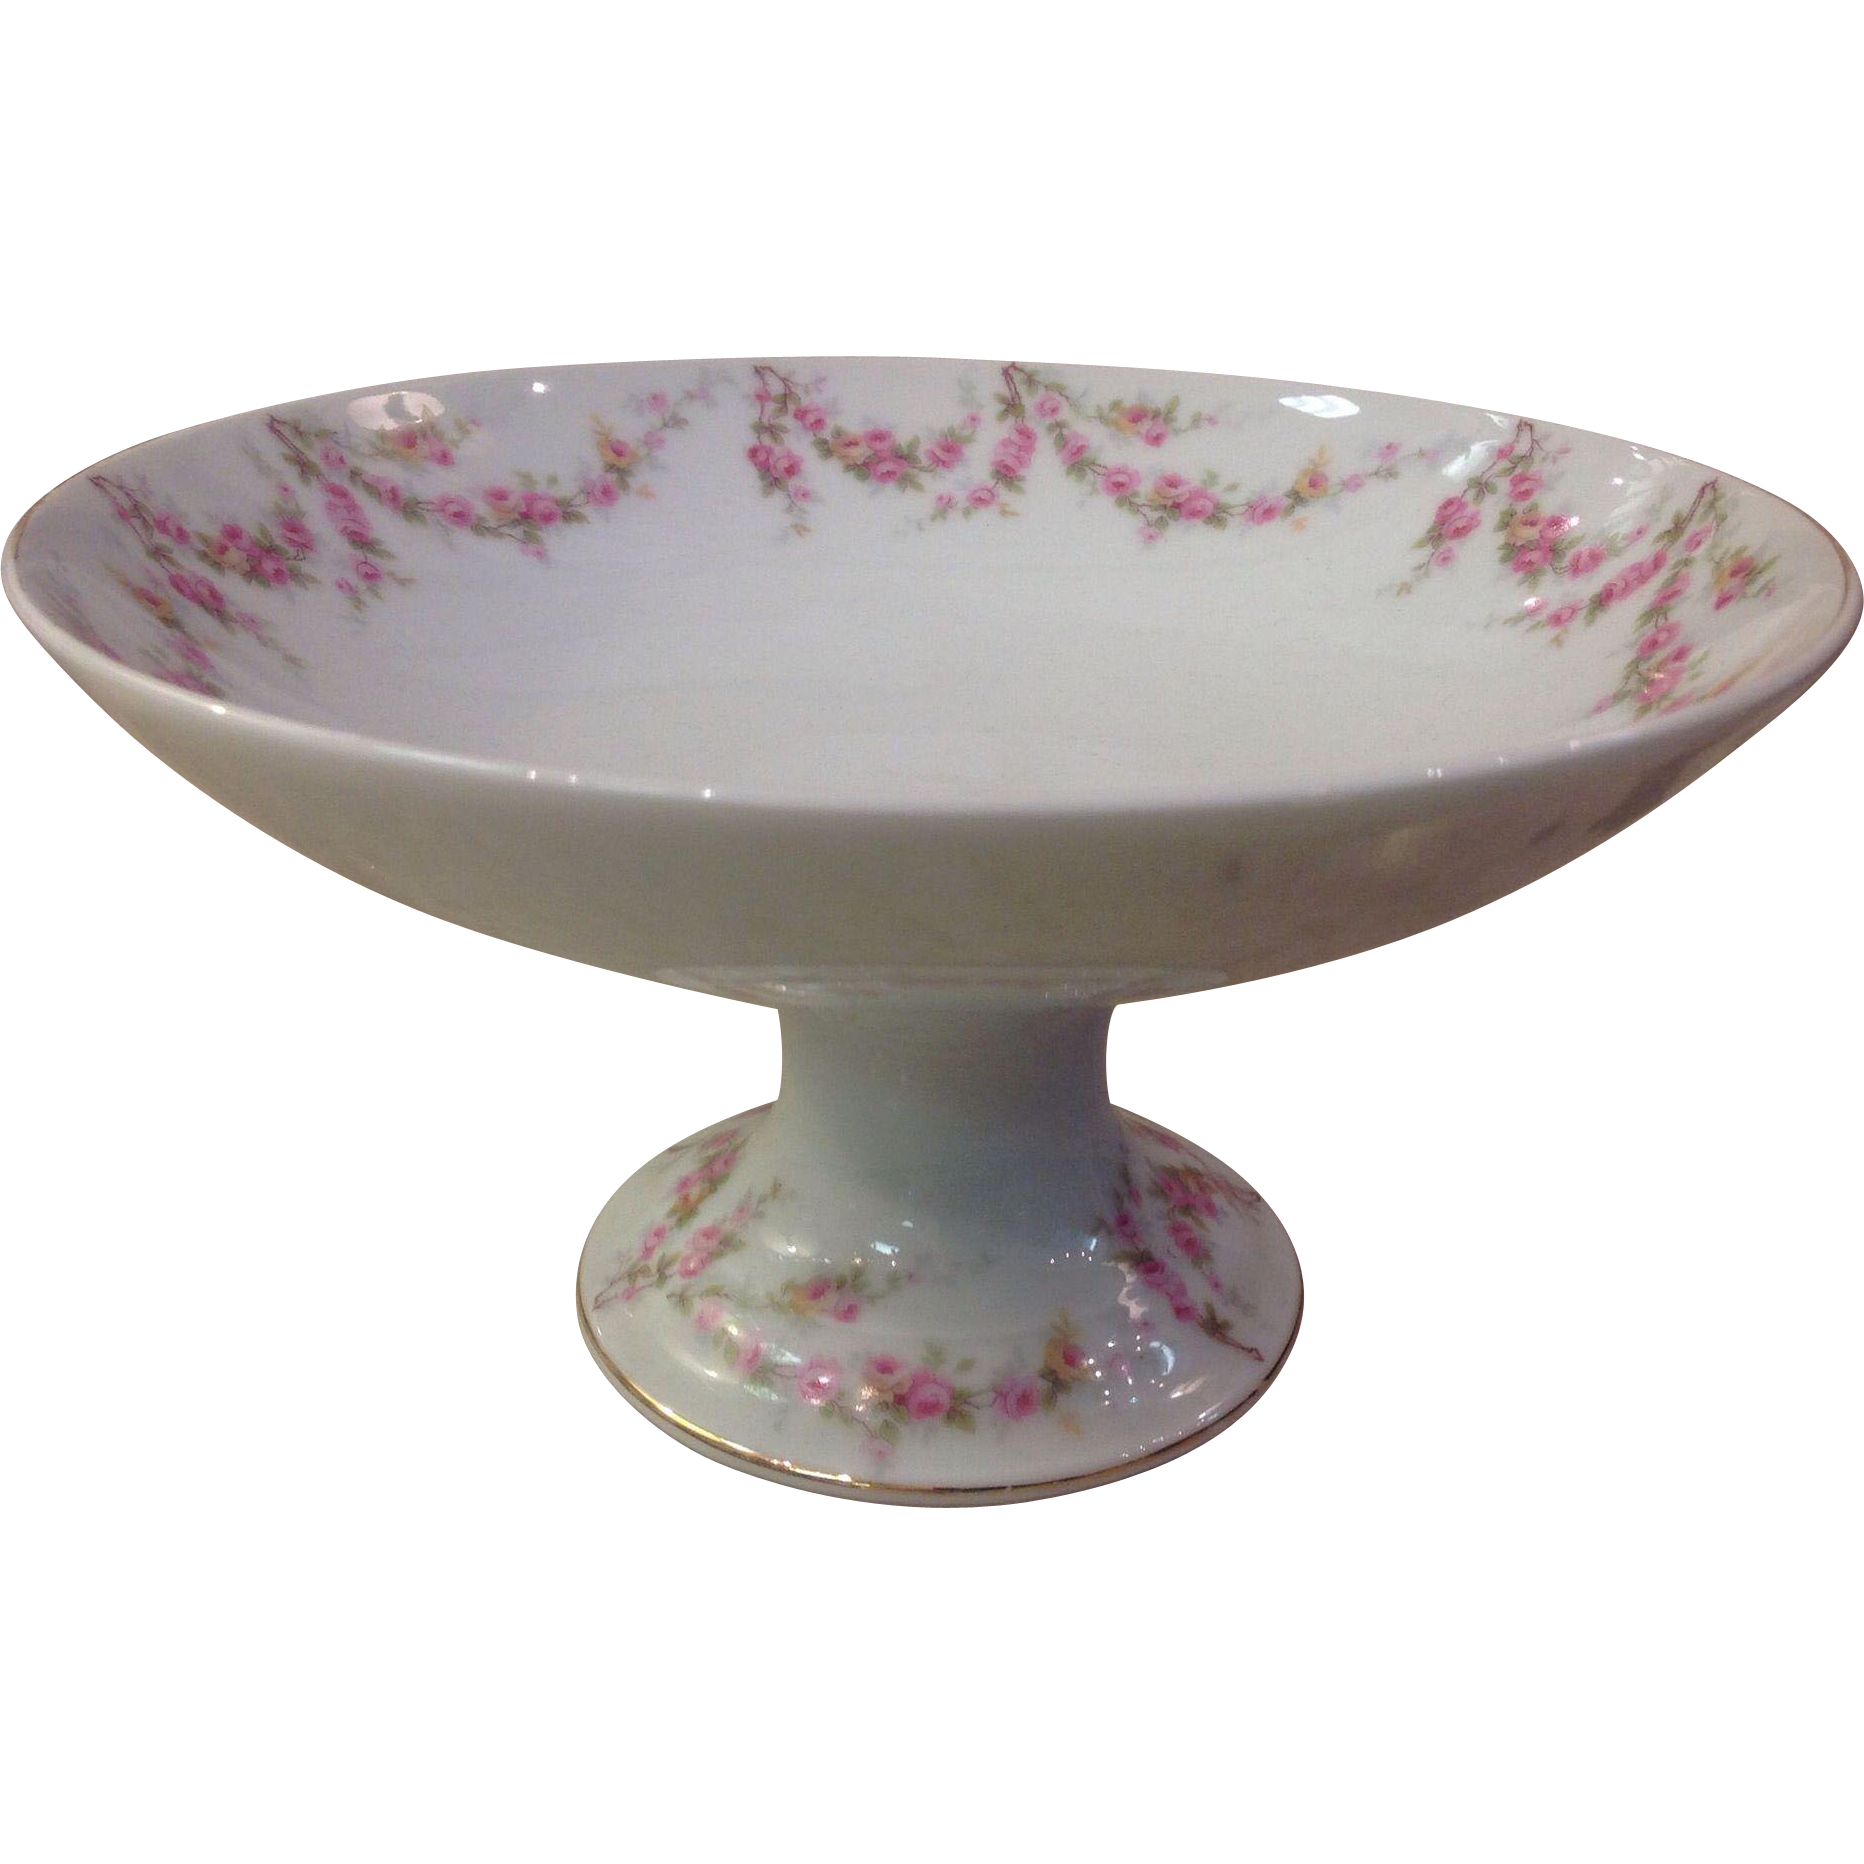 Royal Schwarzburg China RSC15 Round Compote Pink Rose Garland Design c.1915